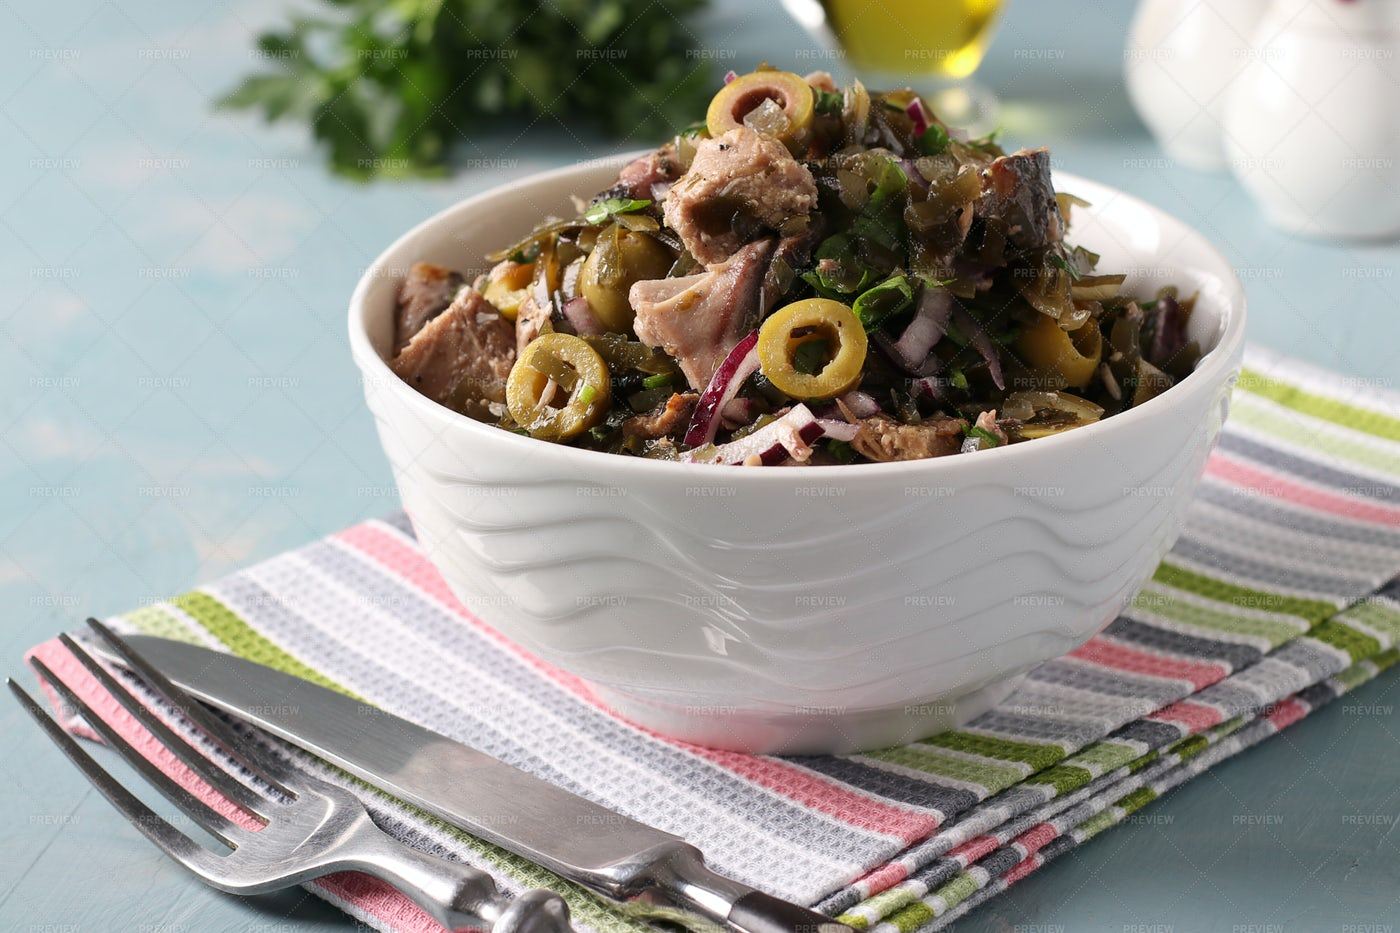 Salad With Kelp, Canned Tuna And Olives: Stock Photos